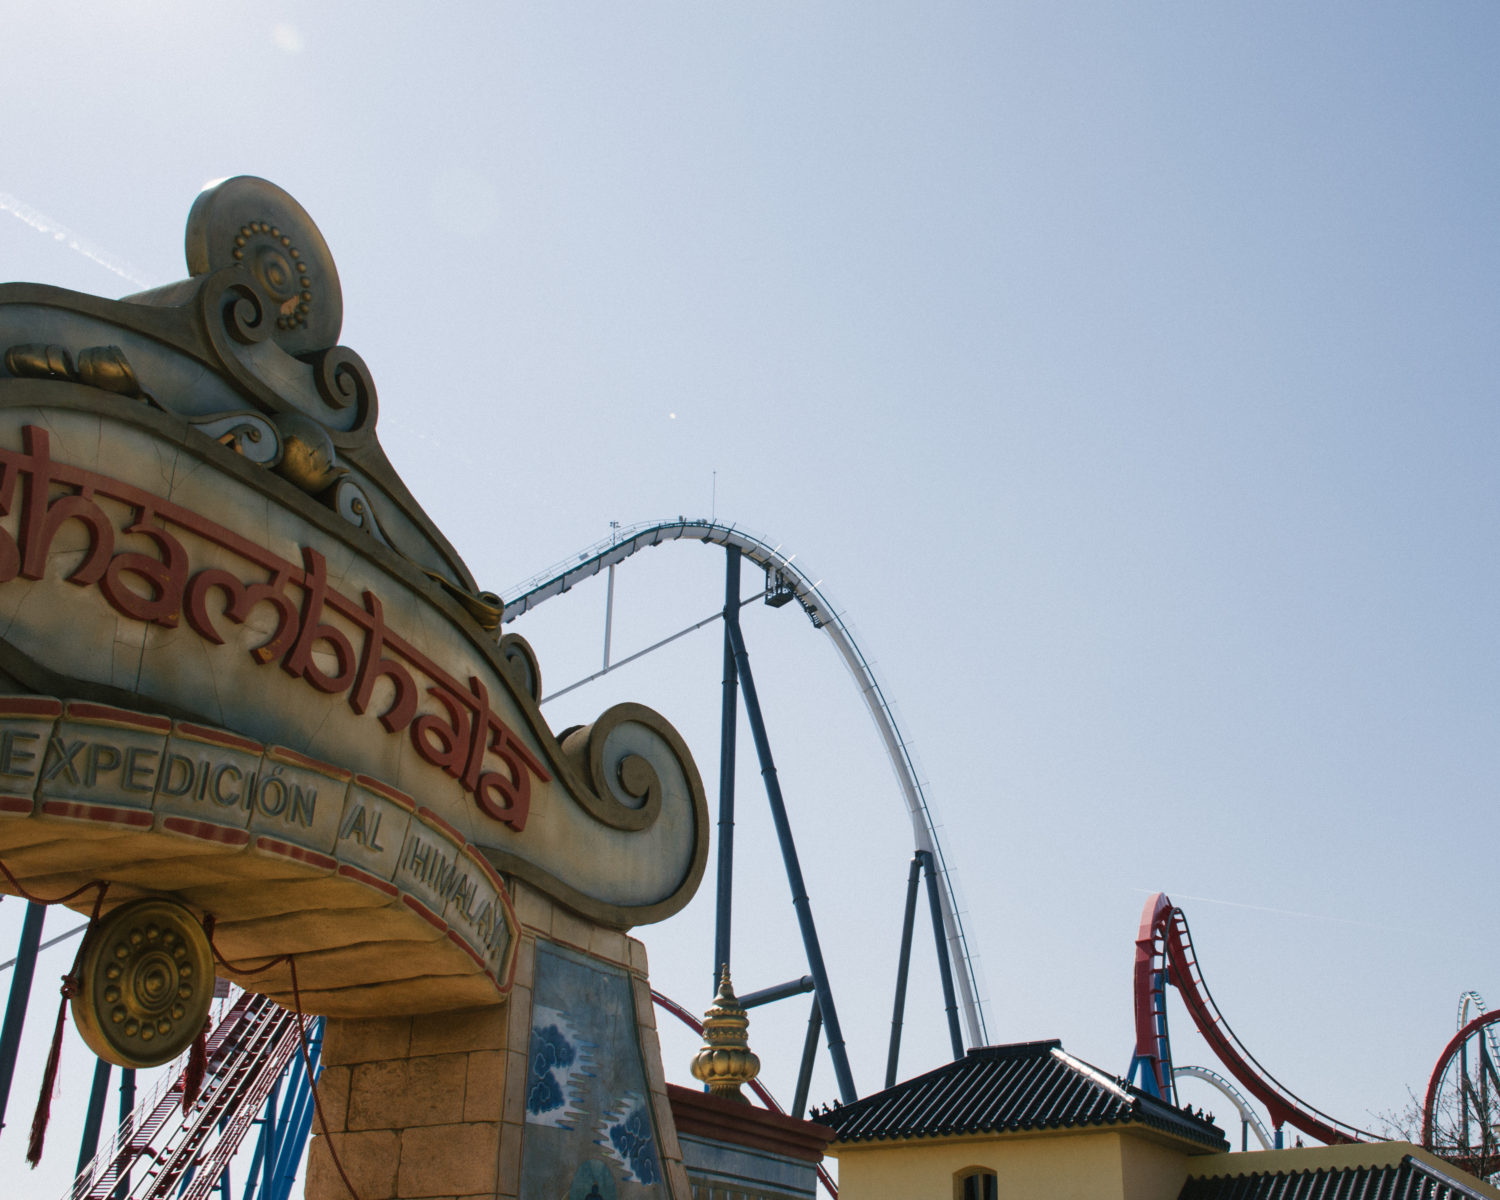 Europe's tallest roller coaster, Shambala, at Port Aventura World.